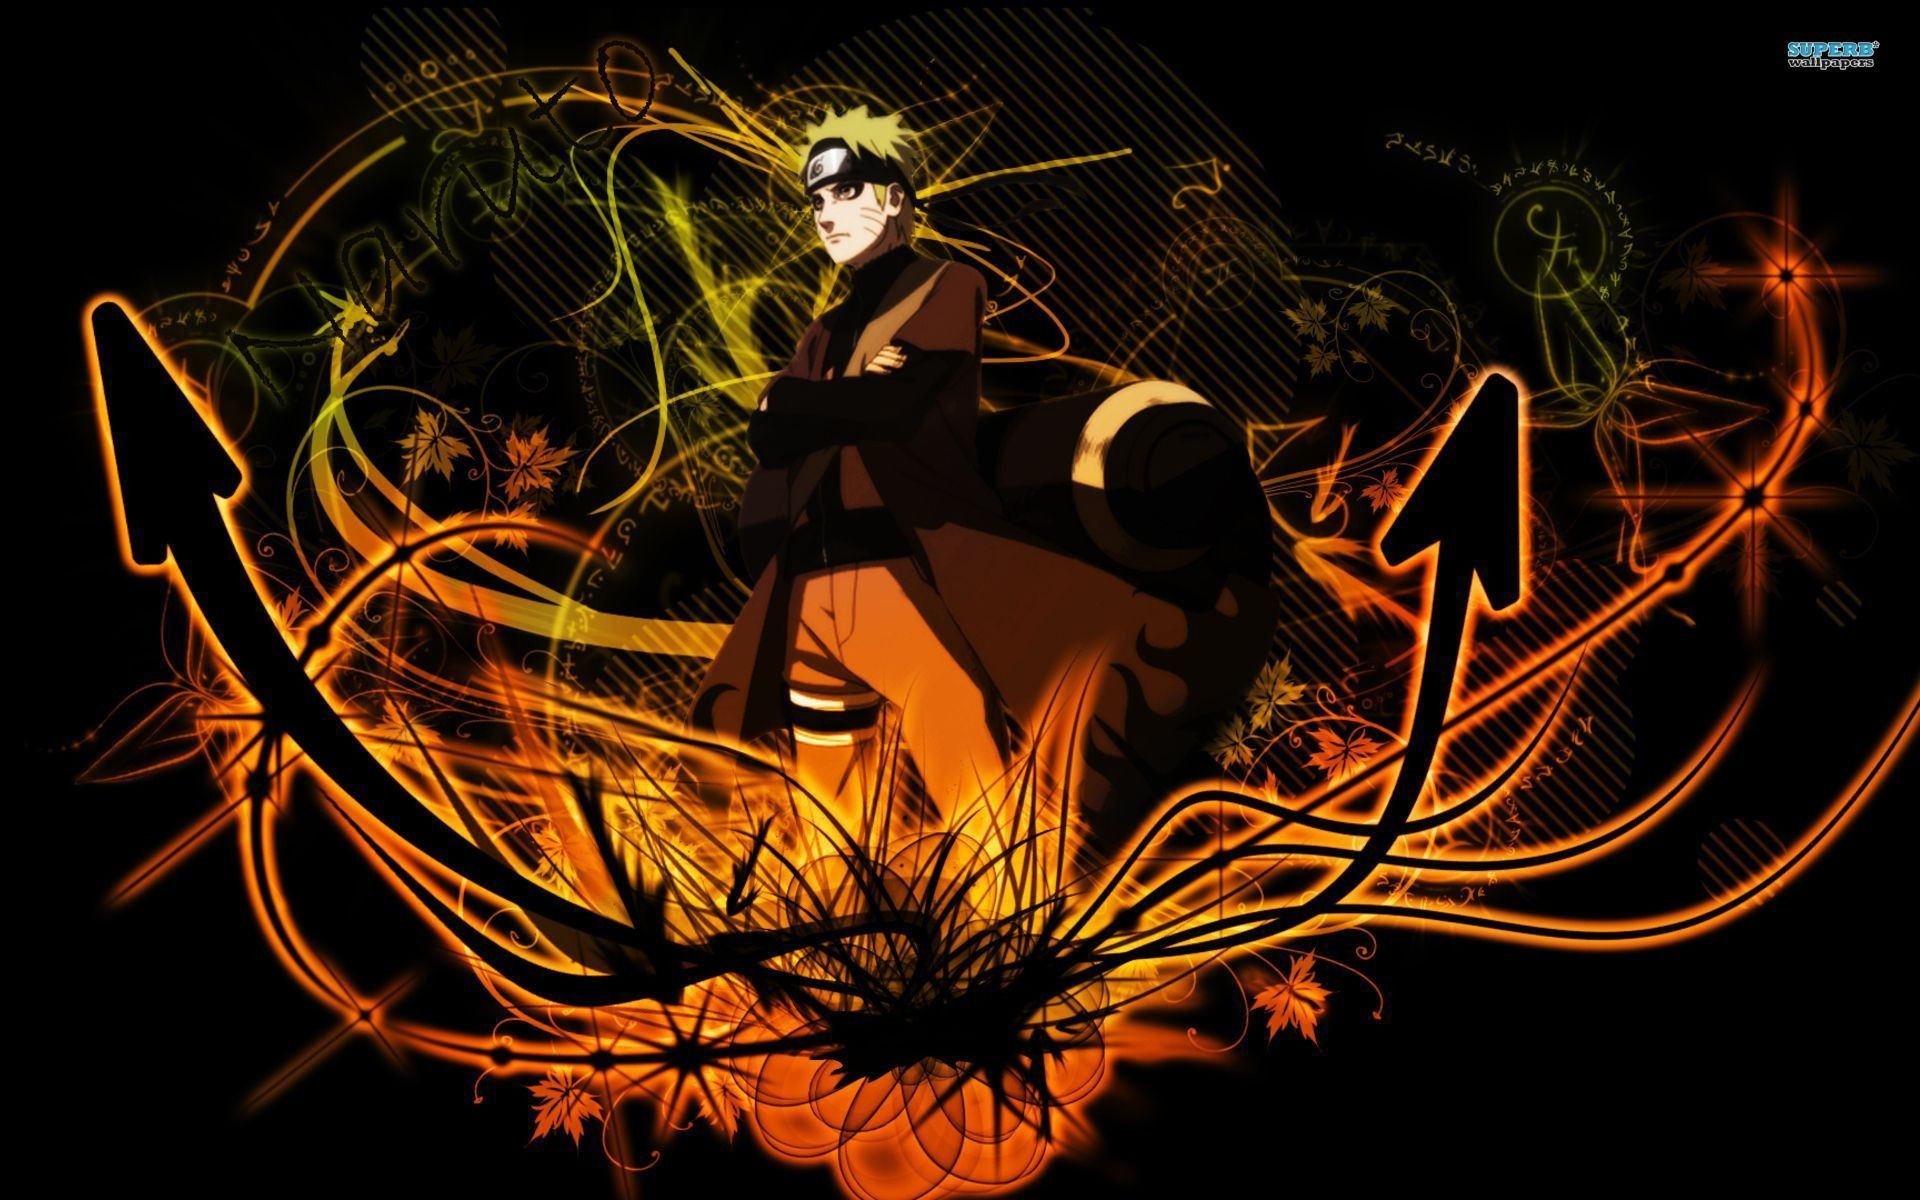 Naruto Shippuden Wallpaper Hd